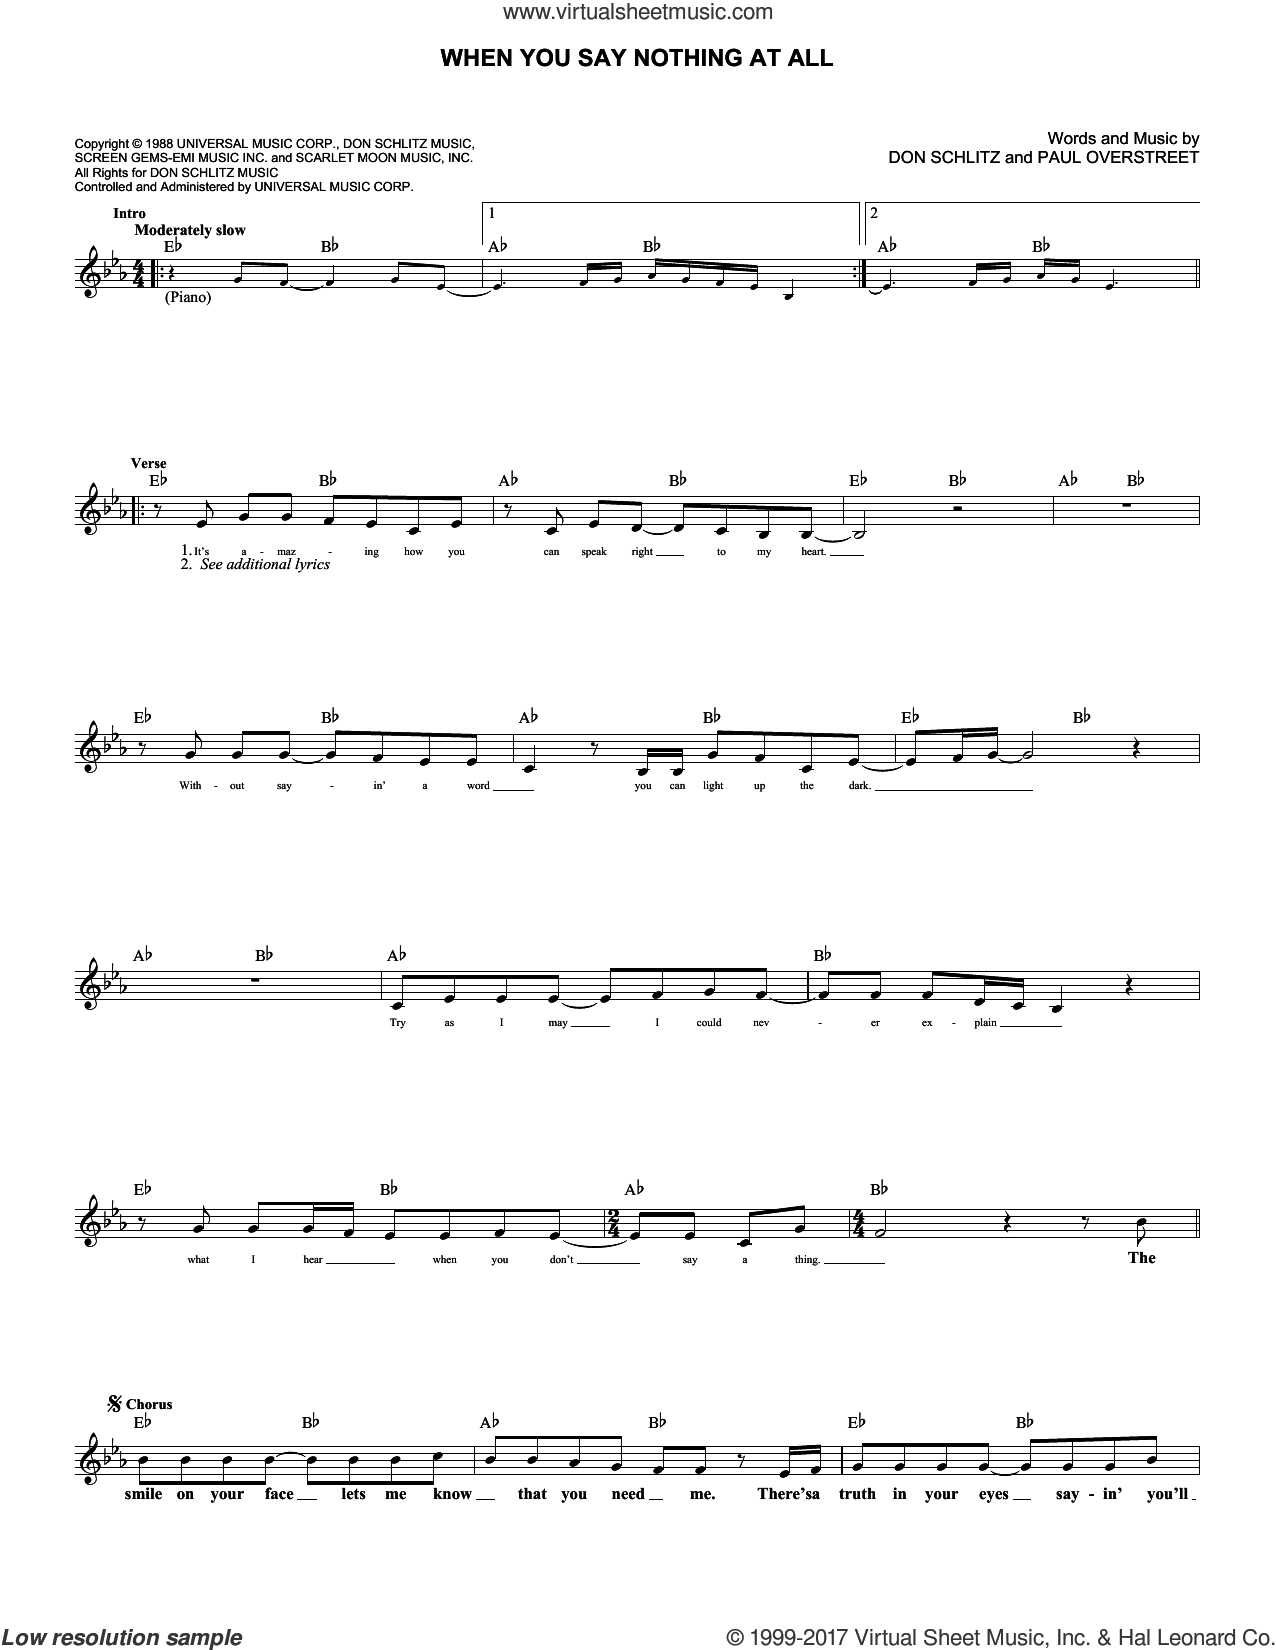 When You Say Nothing At All sheet music for voice and other instruments (fake book) by Alison Krauss & Union Station, Keith Whitley, Don Schlitz and Paul Overstreet, intermediate skill level